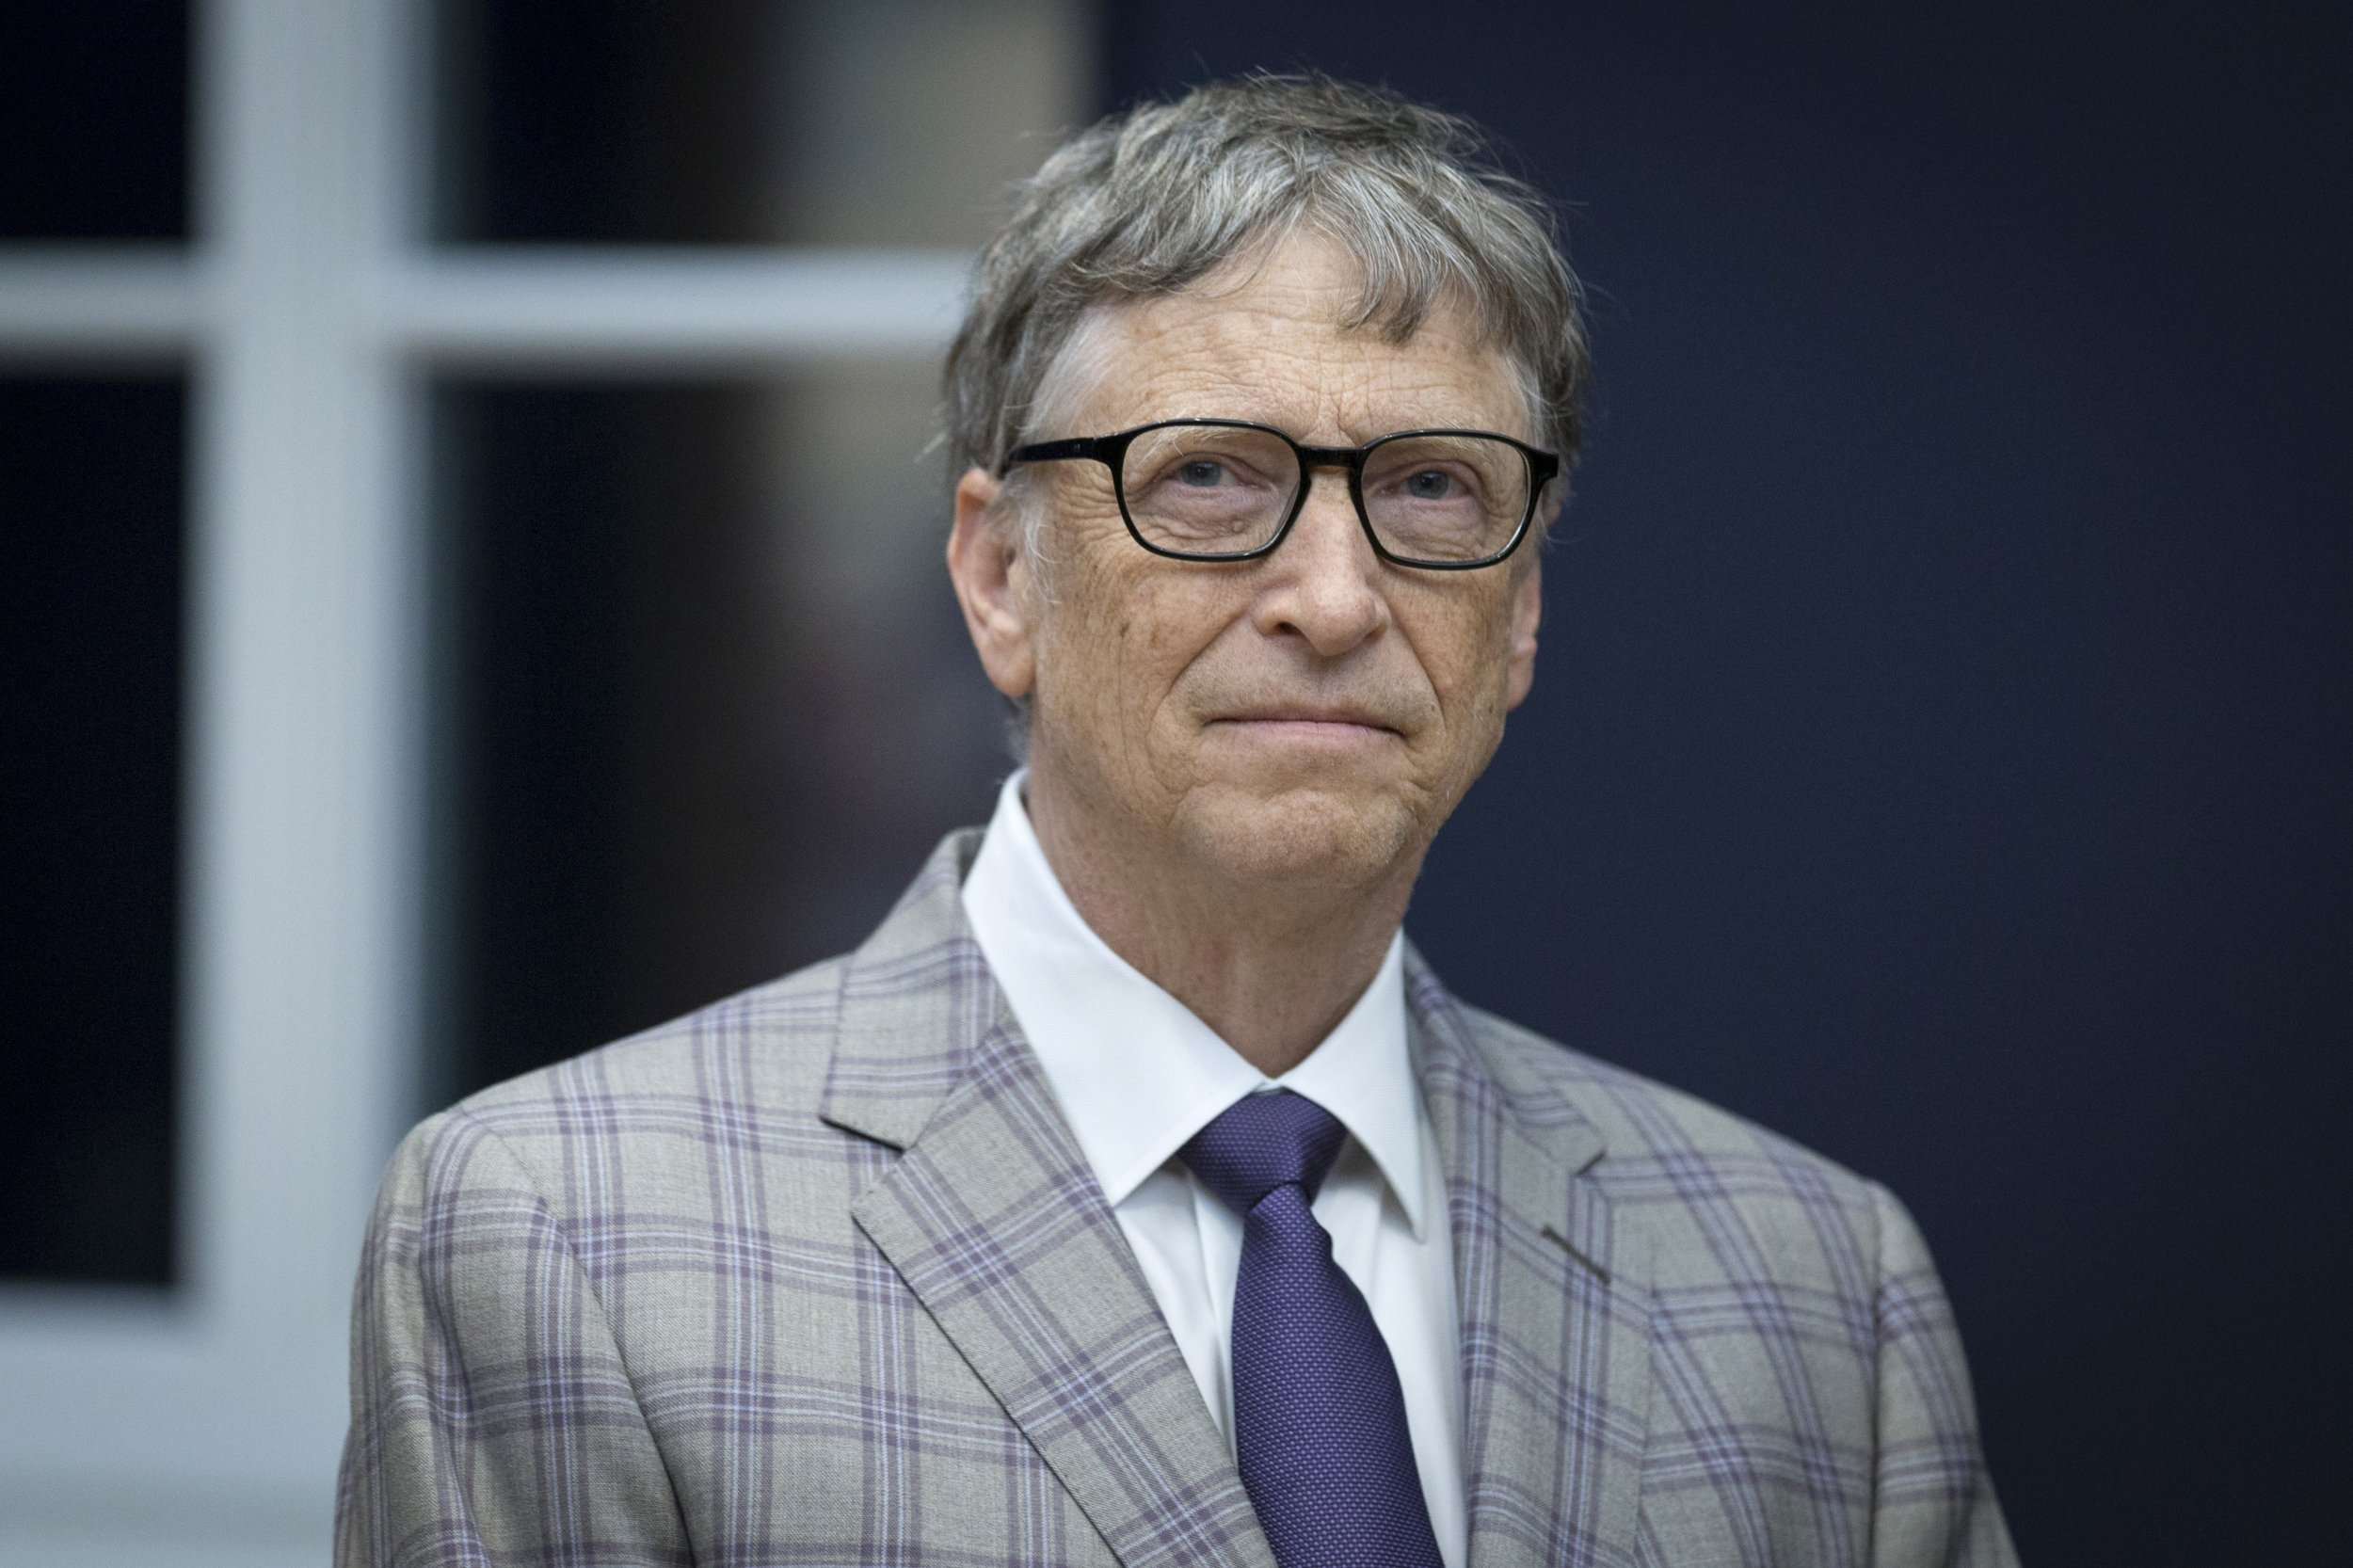 Microsoft co-founder Bill Gates.